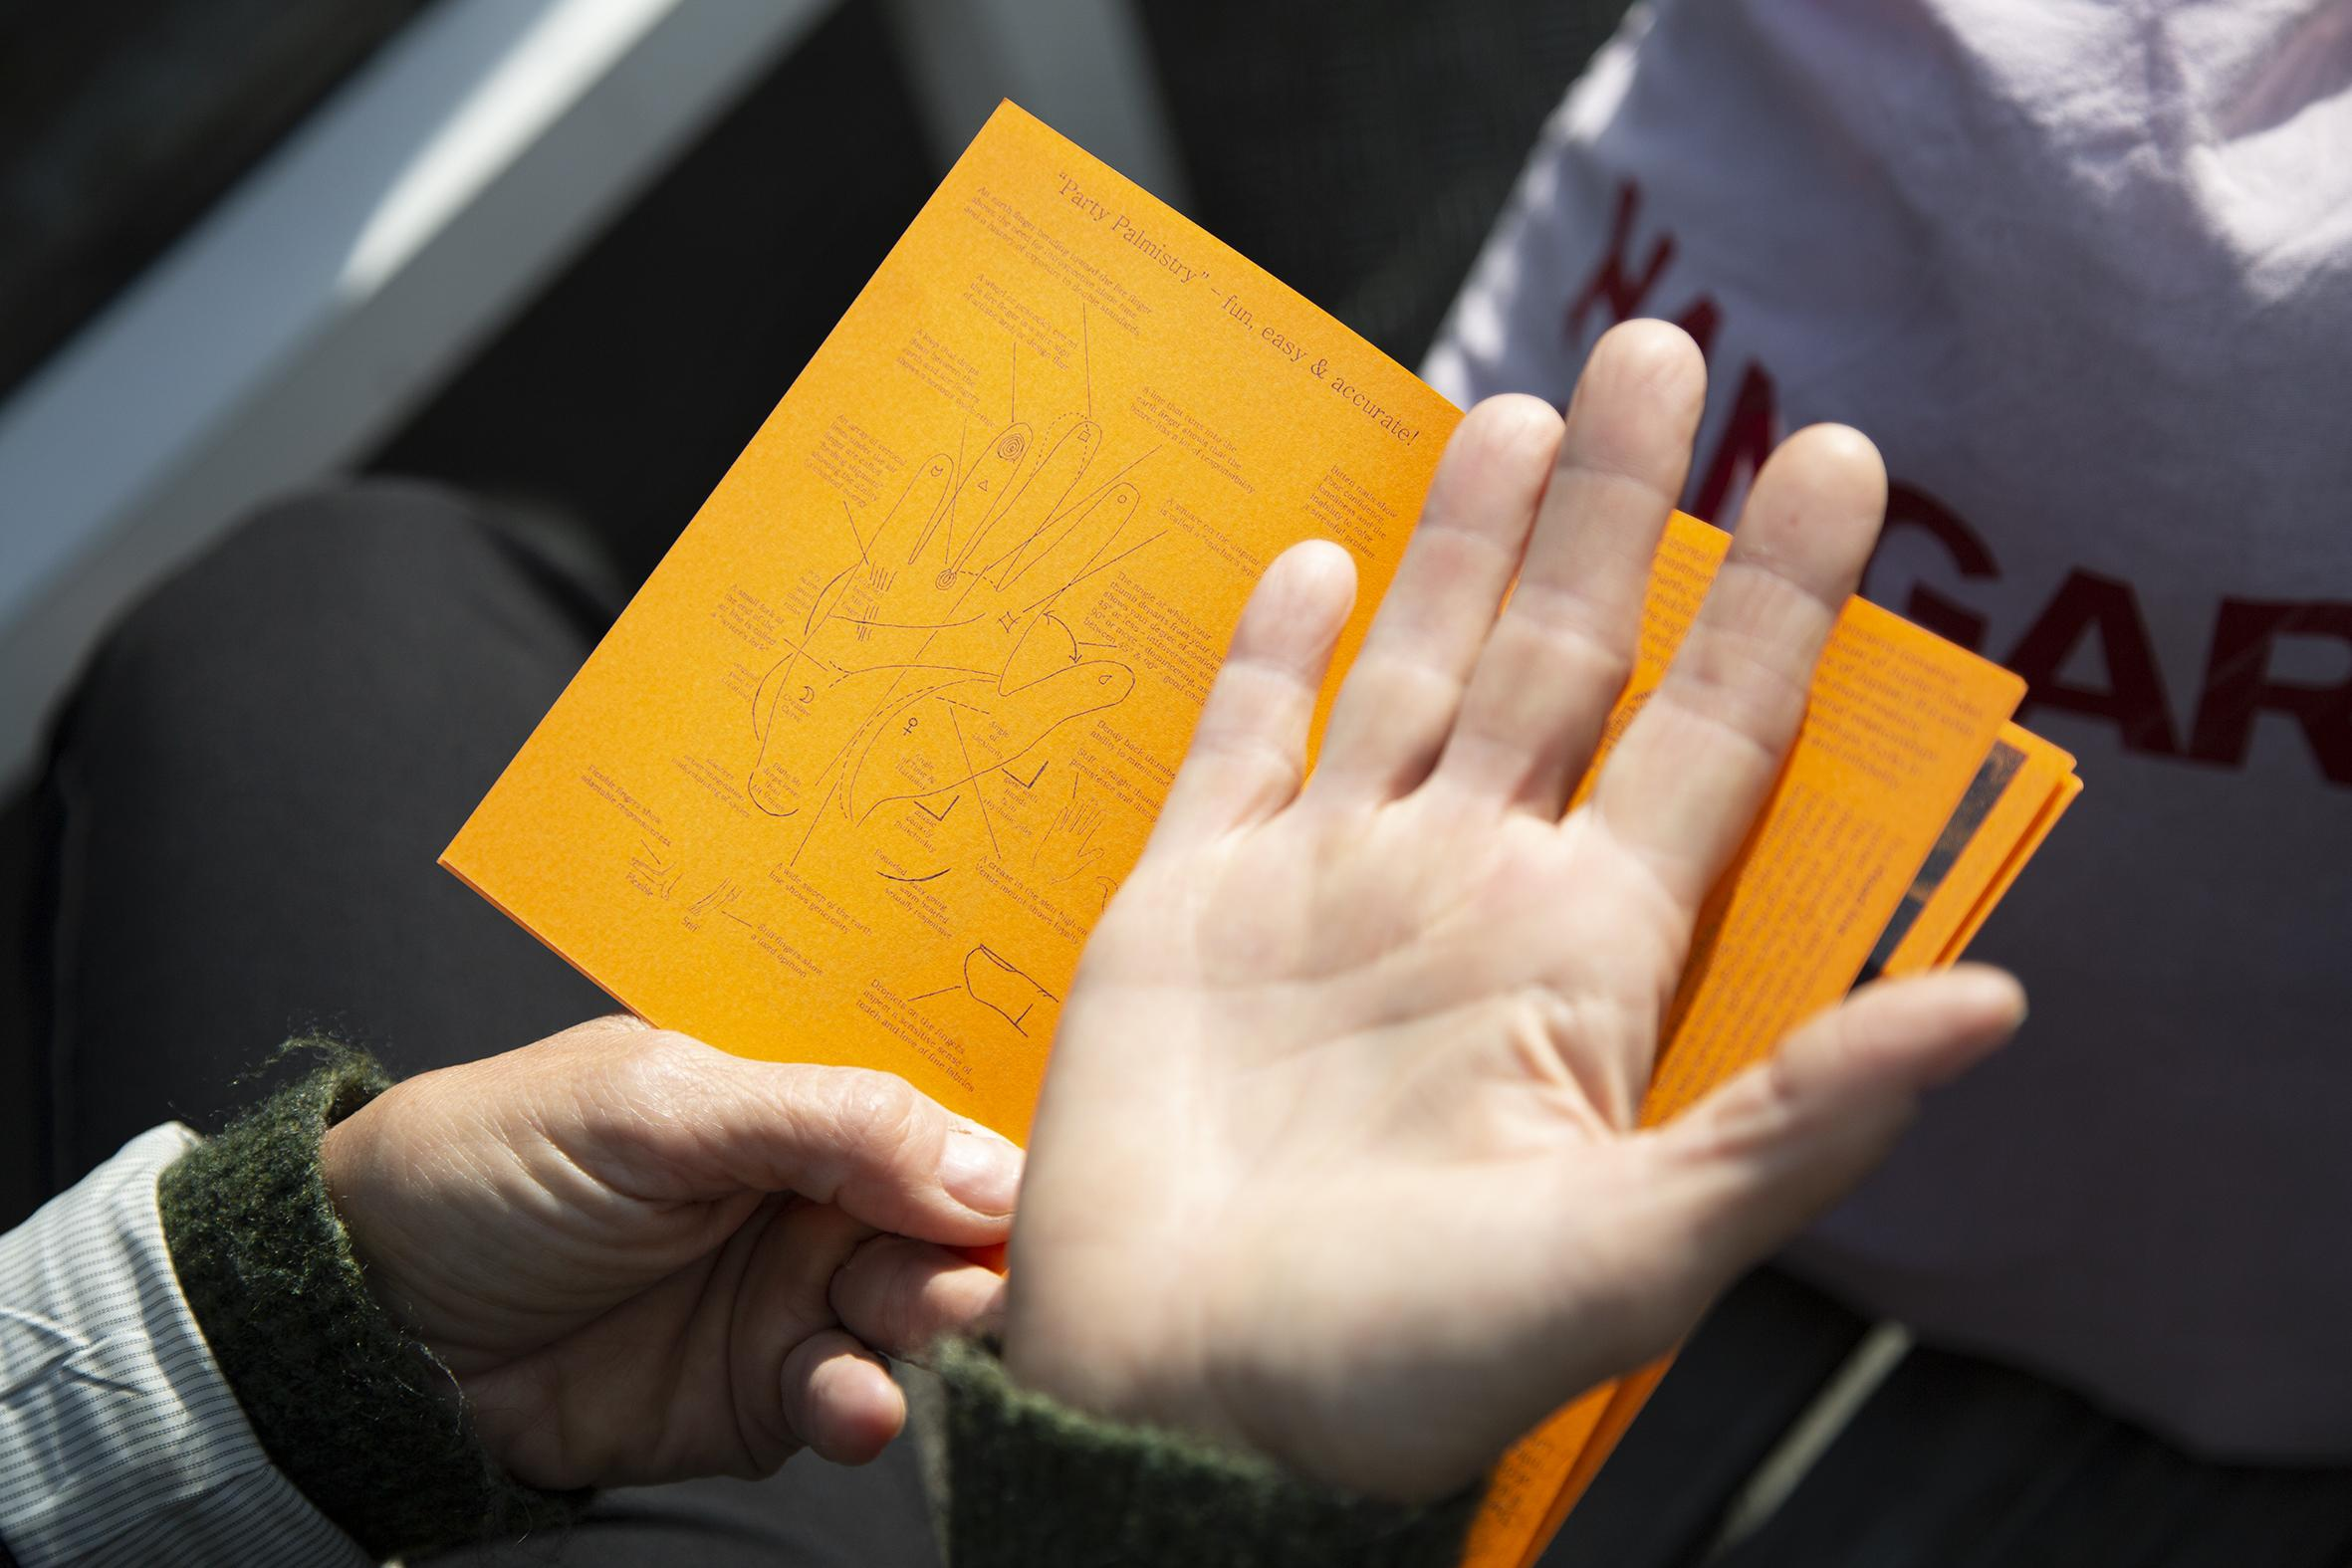 A hand and a leaflet.